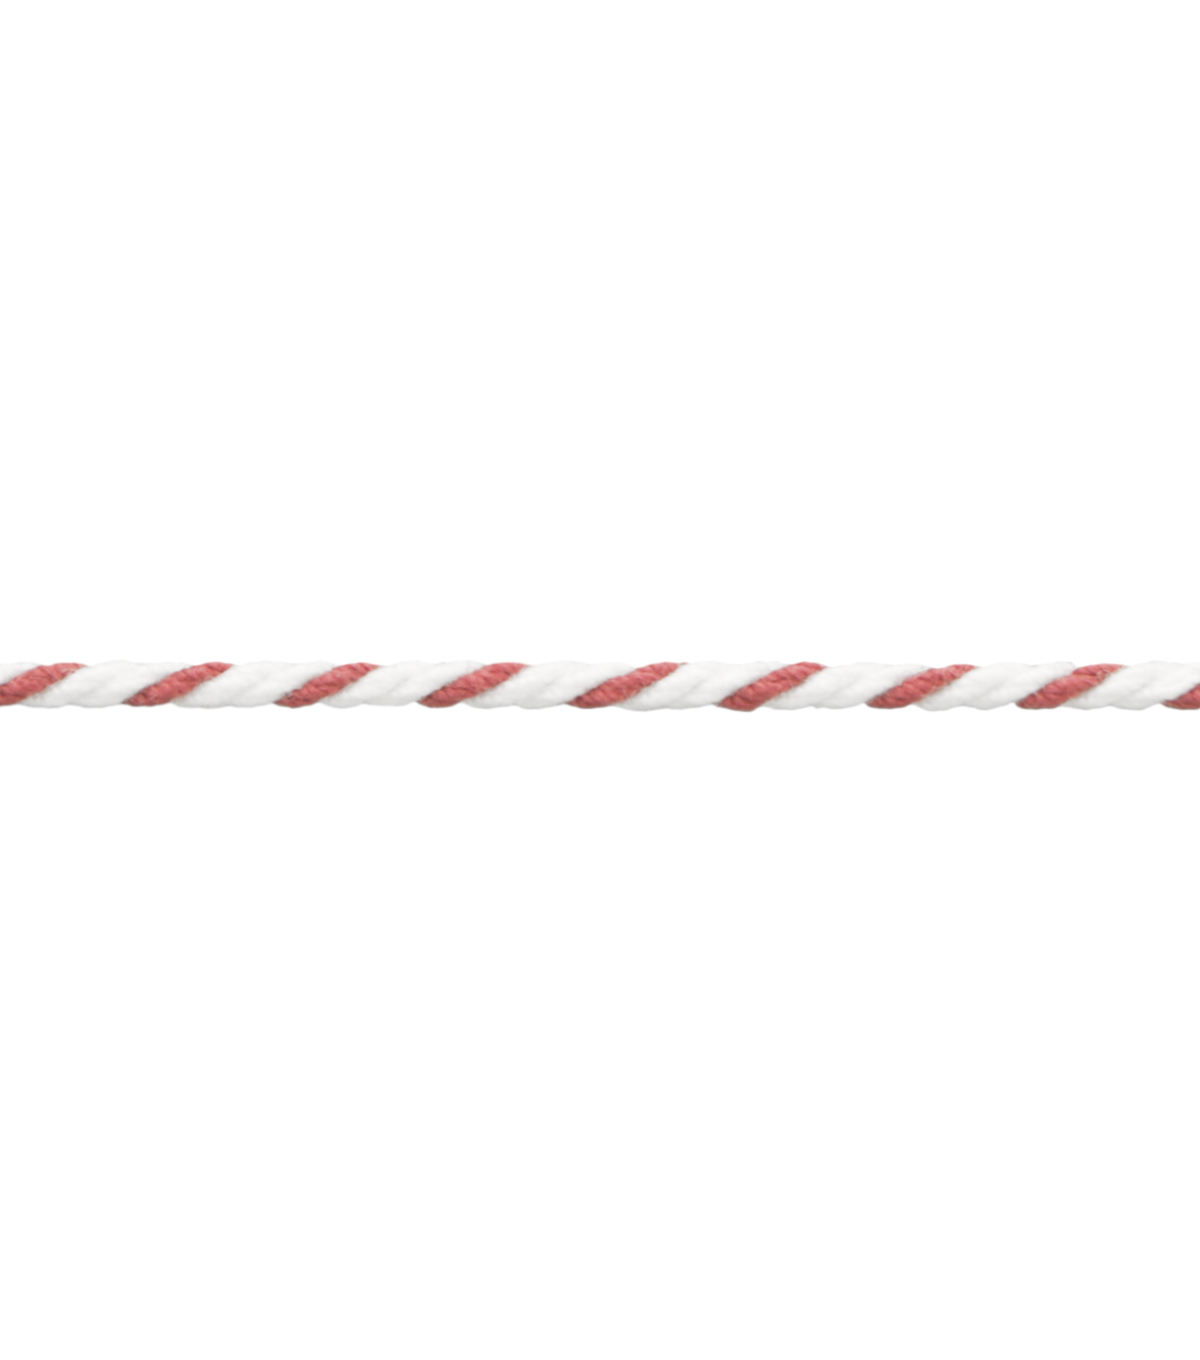 Bakers Twine Red White Apparel Trim- 10 yards